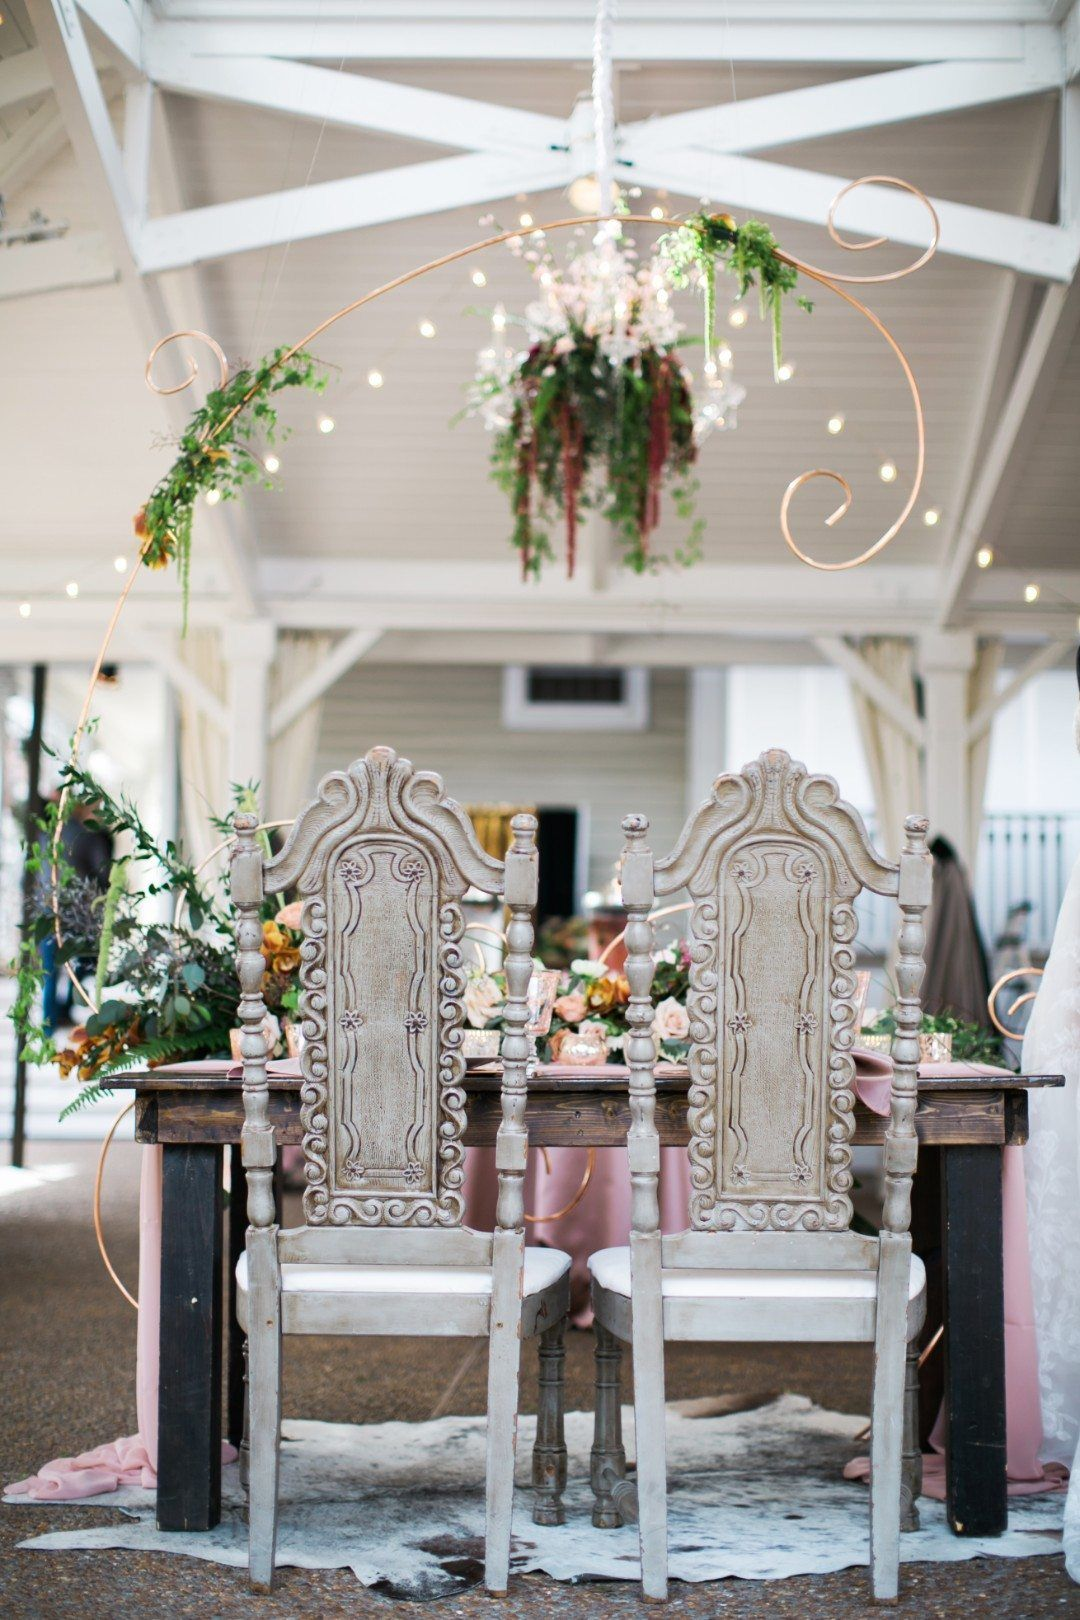 Wedding decorations rental  Wedding Style Inspiration Feminine Modern u Boho at CJus Off the